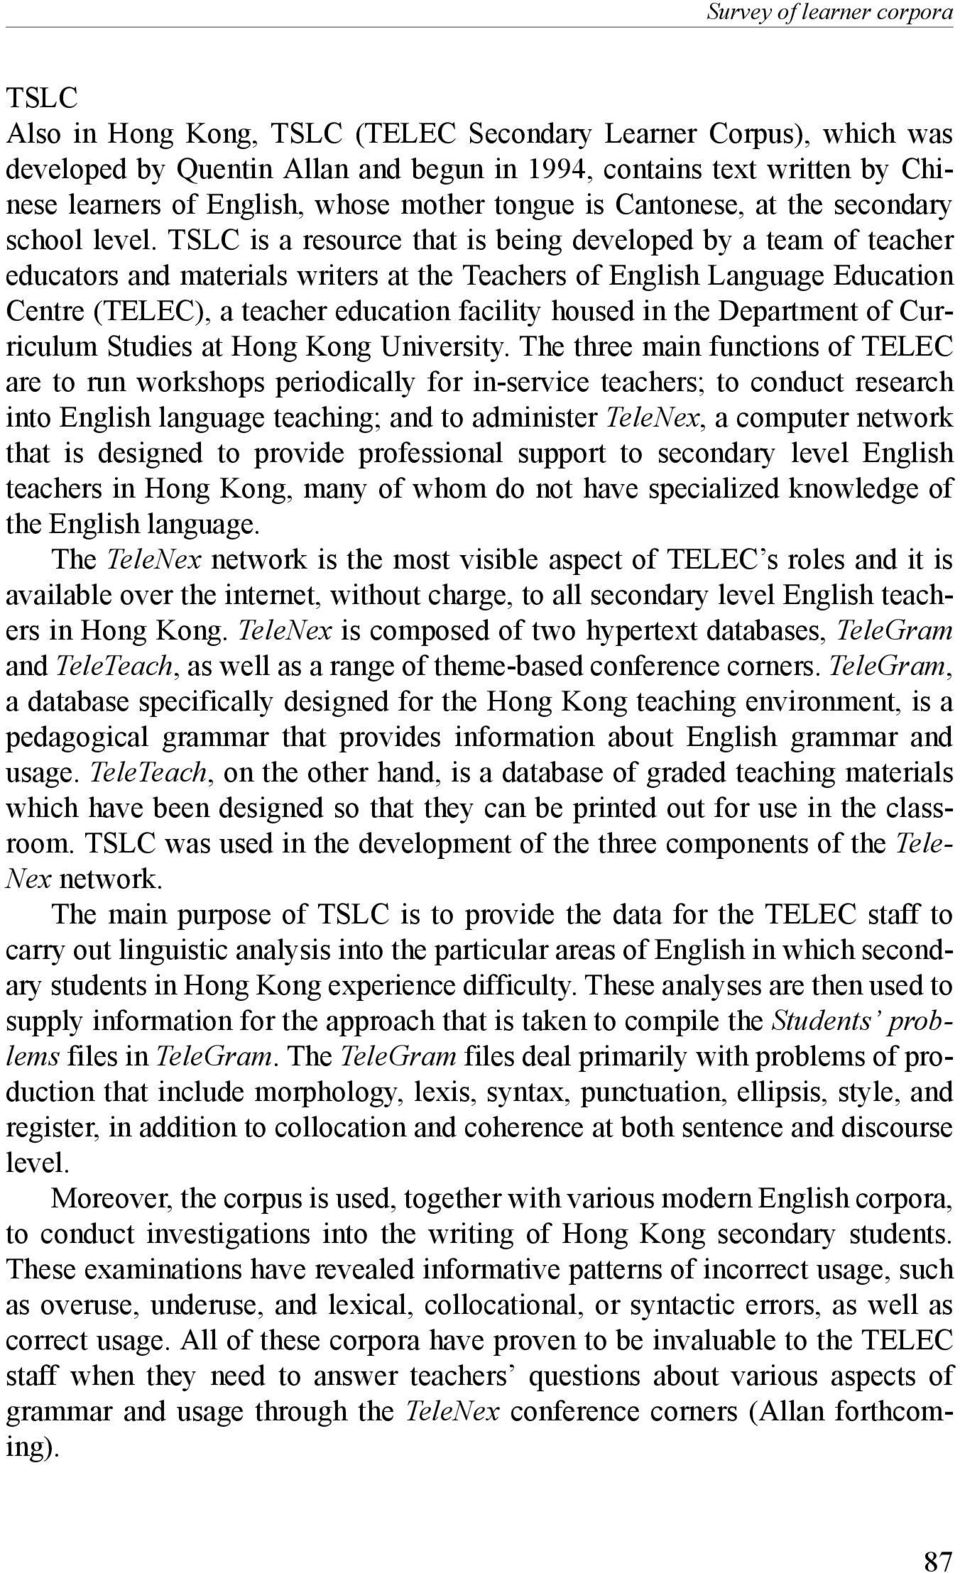 TSLC is a resource that is being developed by a team of teacher educators and materials writers at the Teachers of English Language Education Centre (TELEC), a teacher education facility housed in